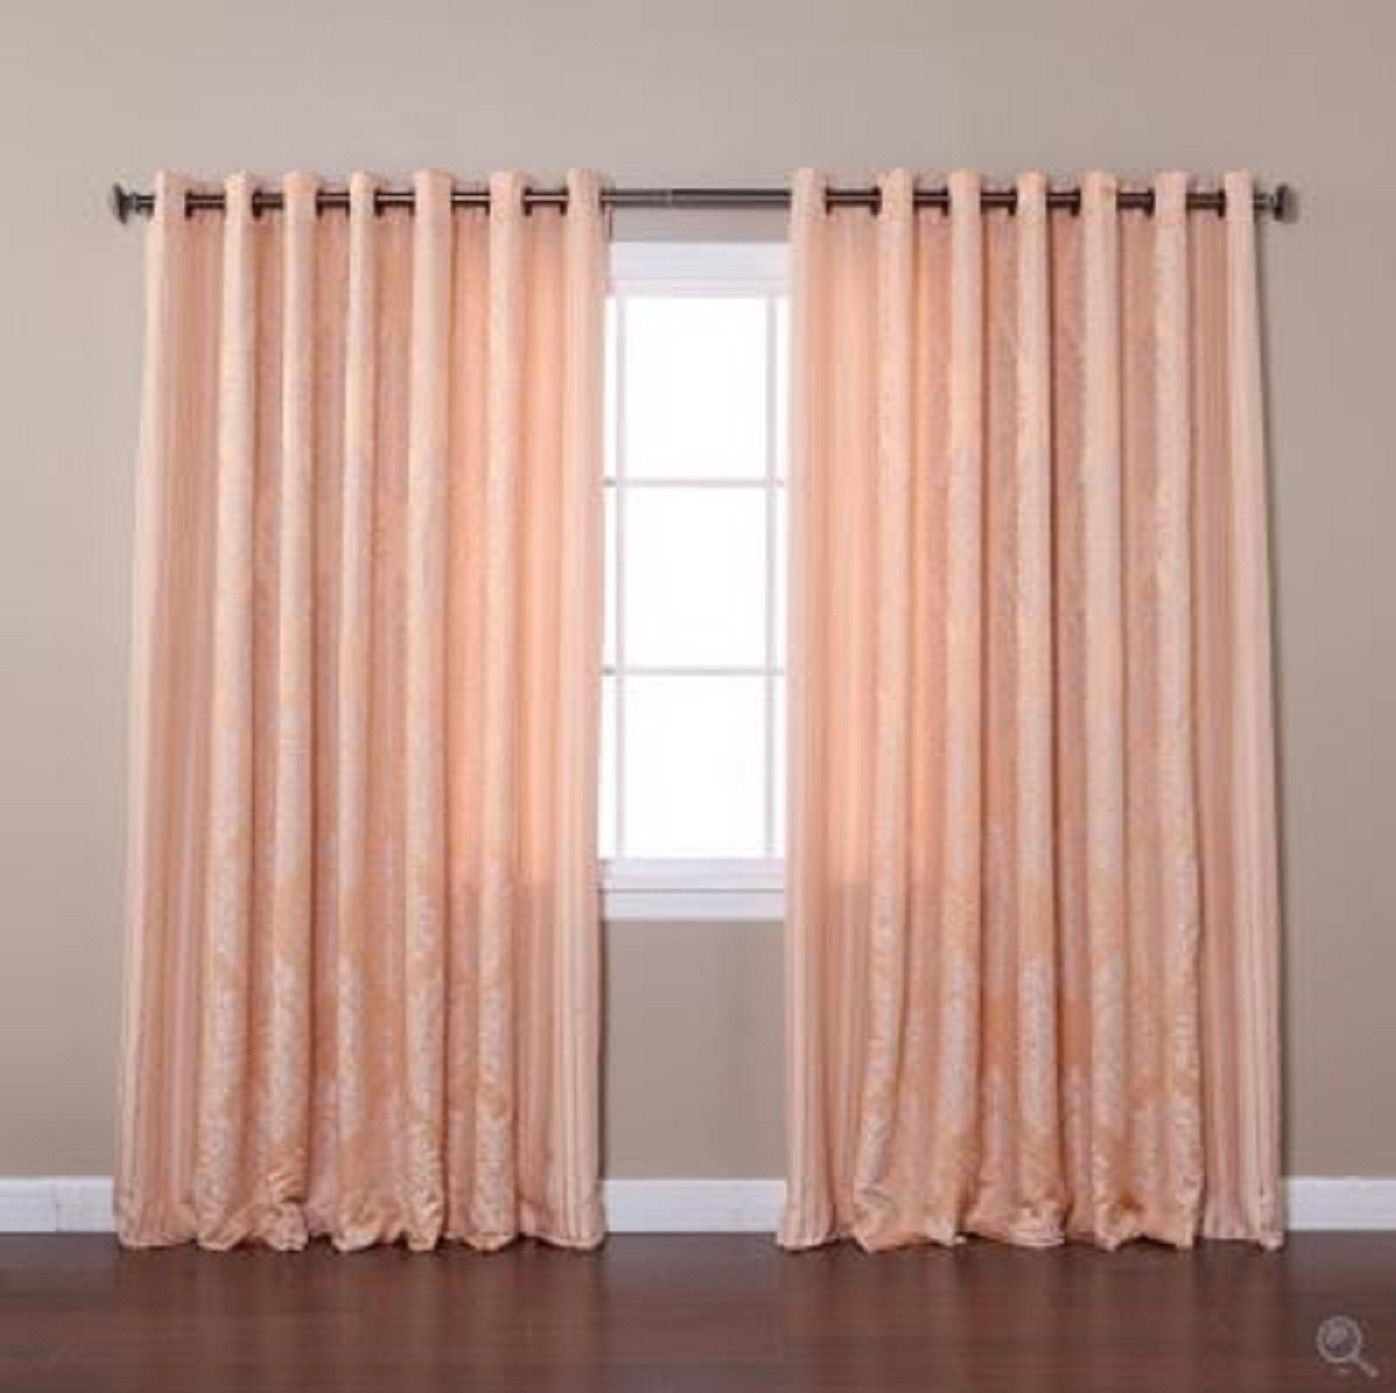 New Wide Width Windows Curtains Treatment Patio Door Grommet Drapes Home Decor  Curtains